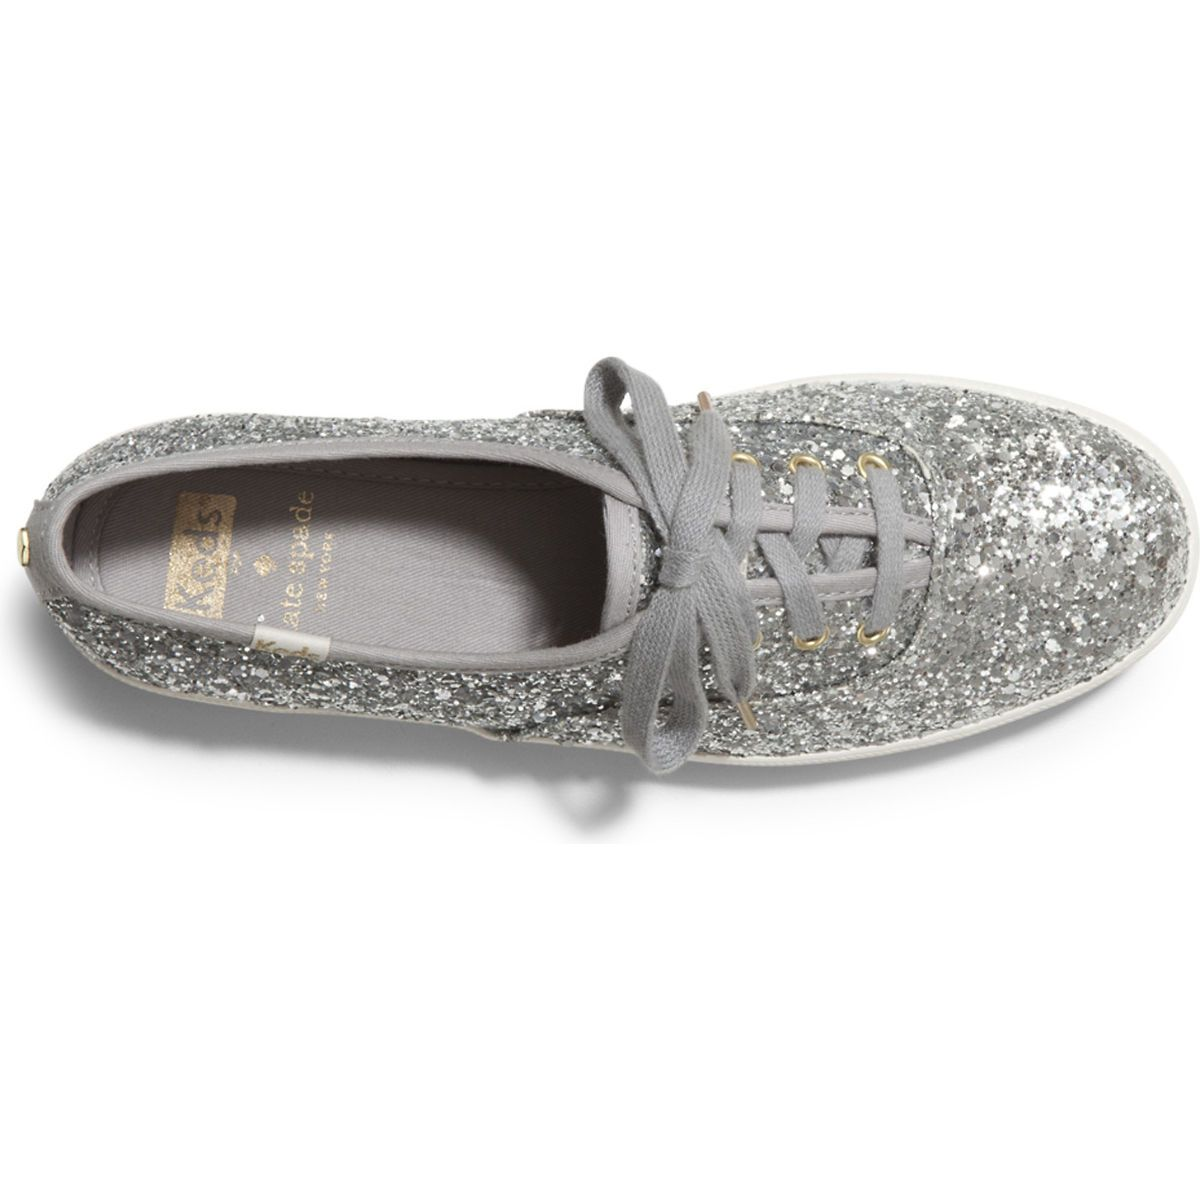 2cc688a194b Women - KEDS X kate spade new york CHAMPION GLITTER - Cream Glitter ...